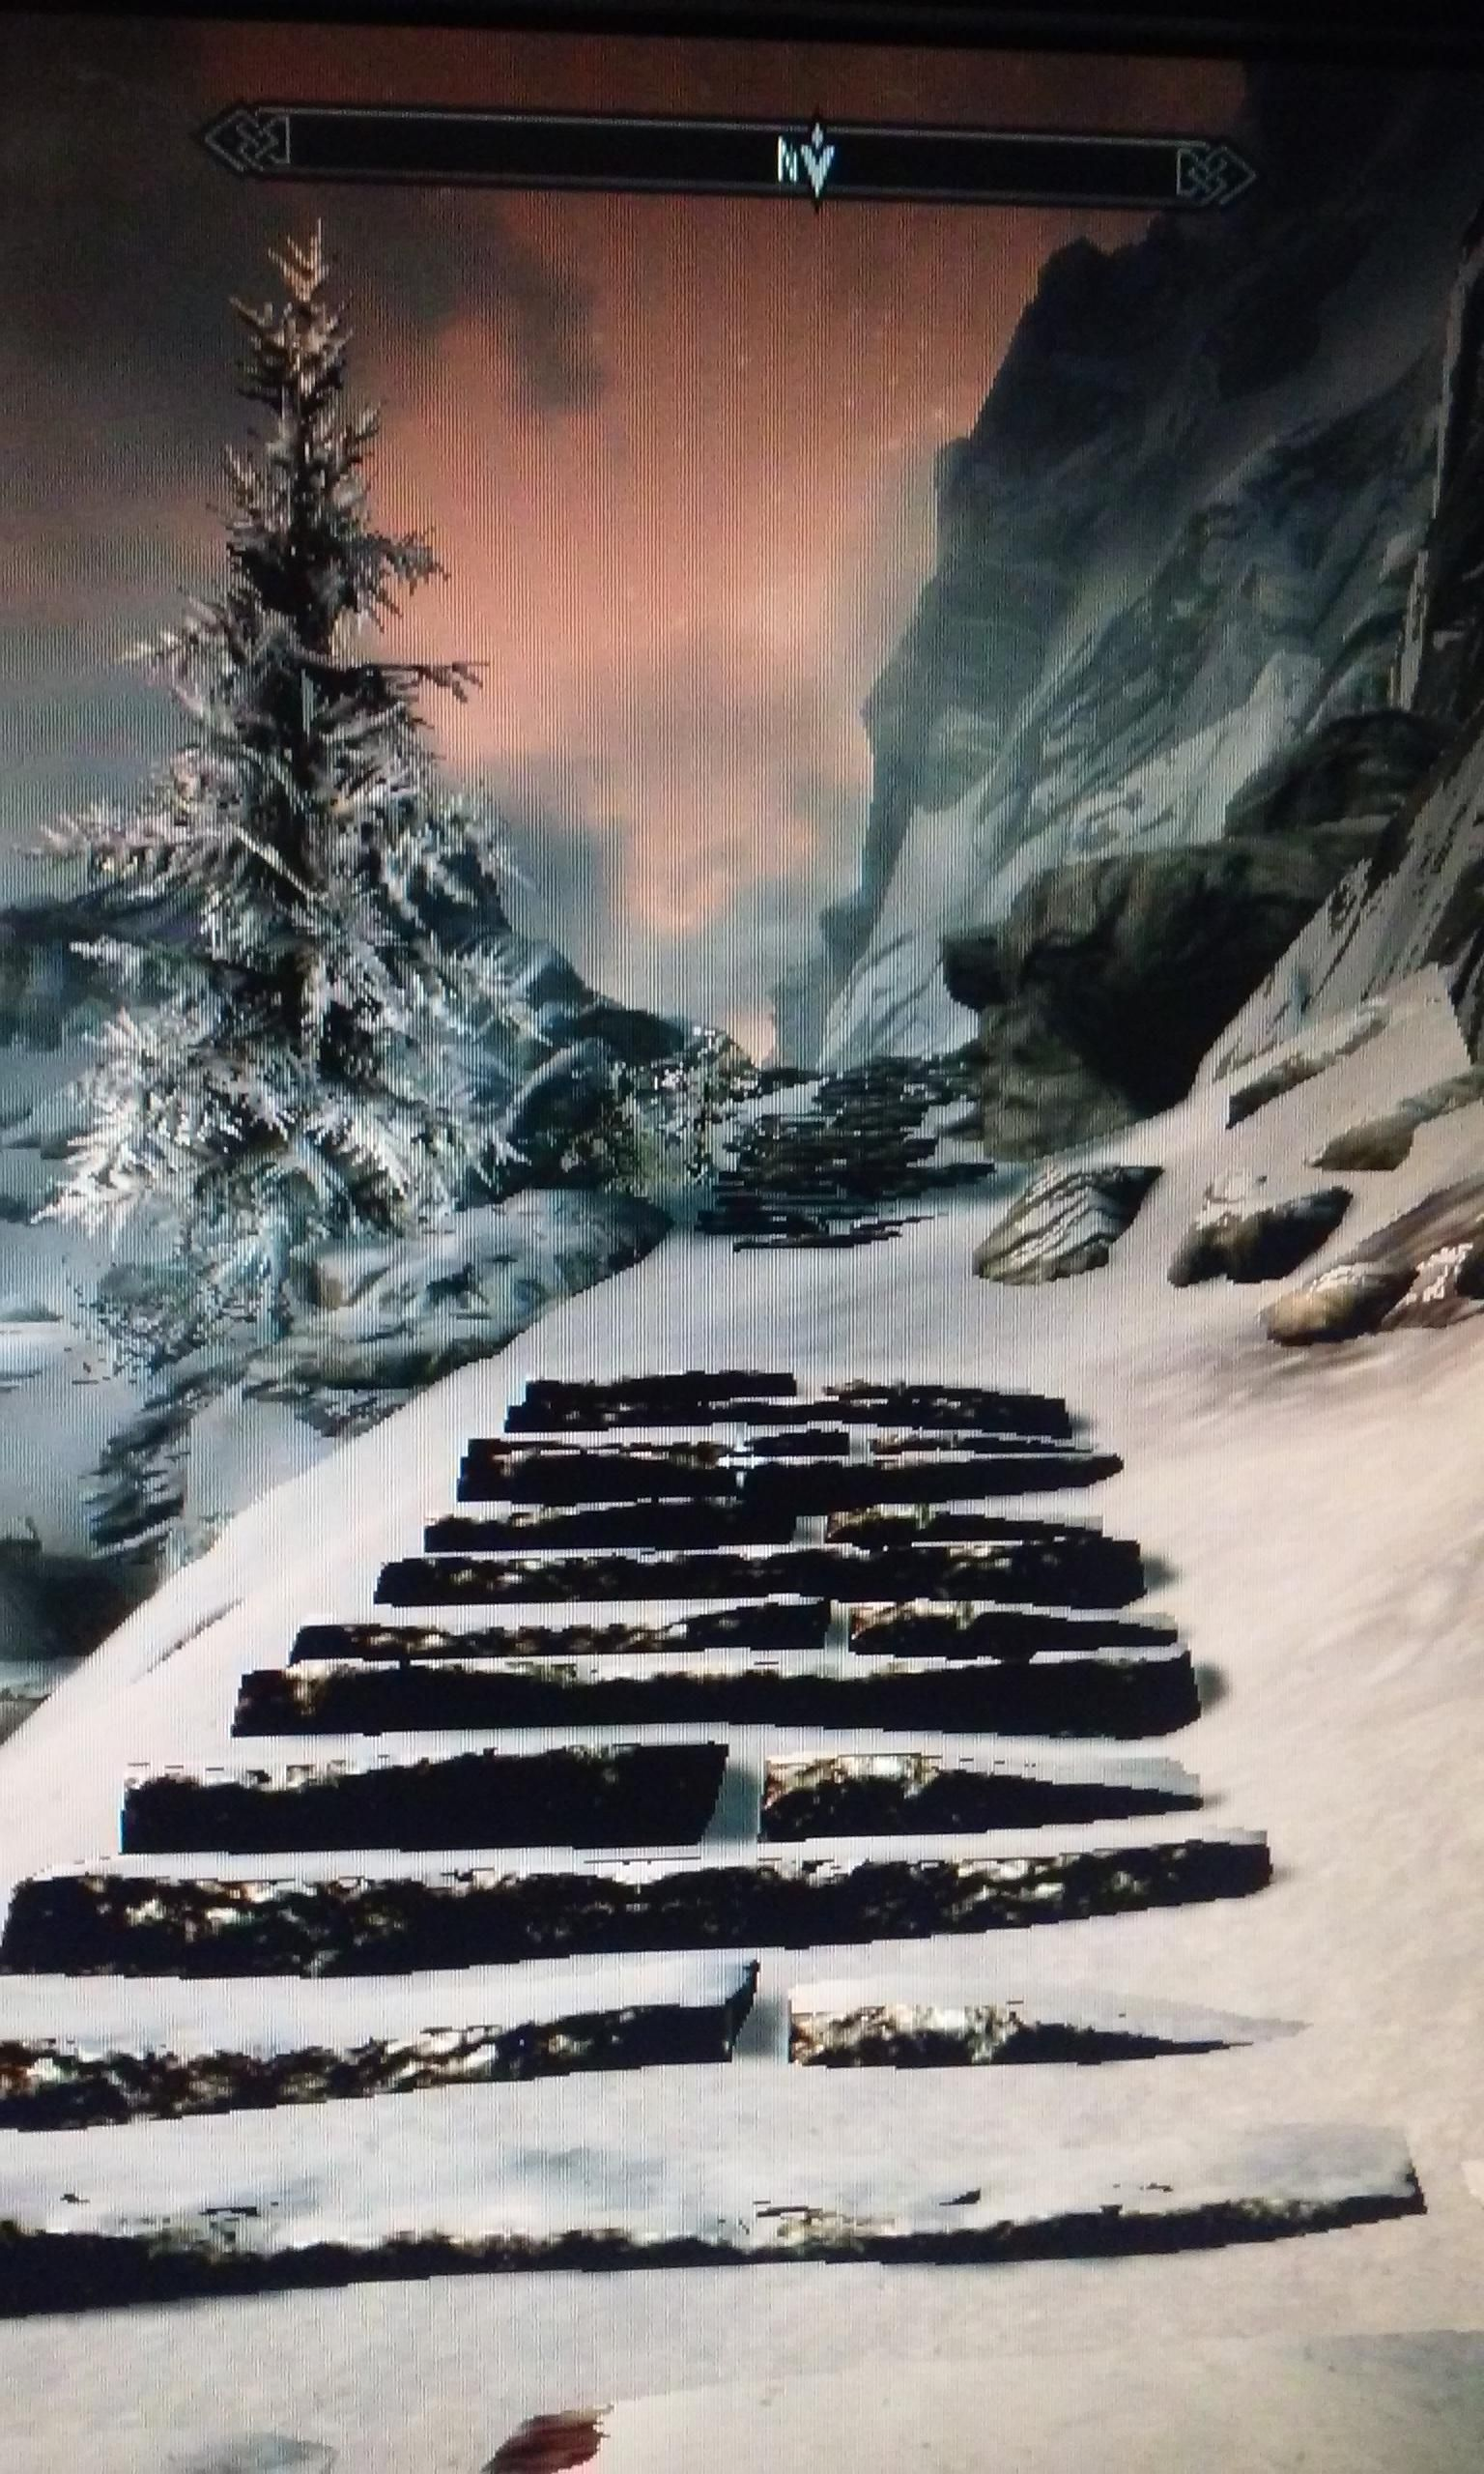 I hope I'm ready. #games #Skyrim #elderscrolls #BE3 #gaming #videogames #Concours #NGC